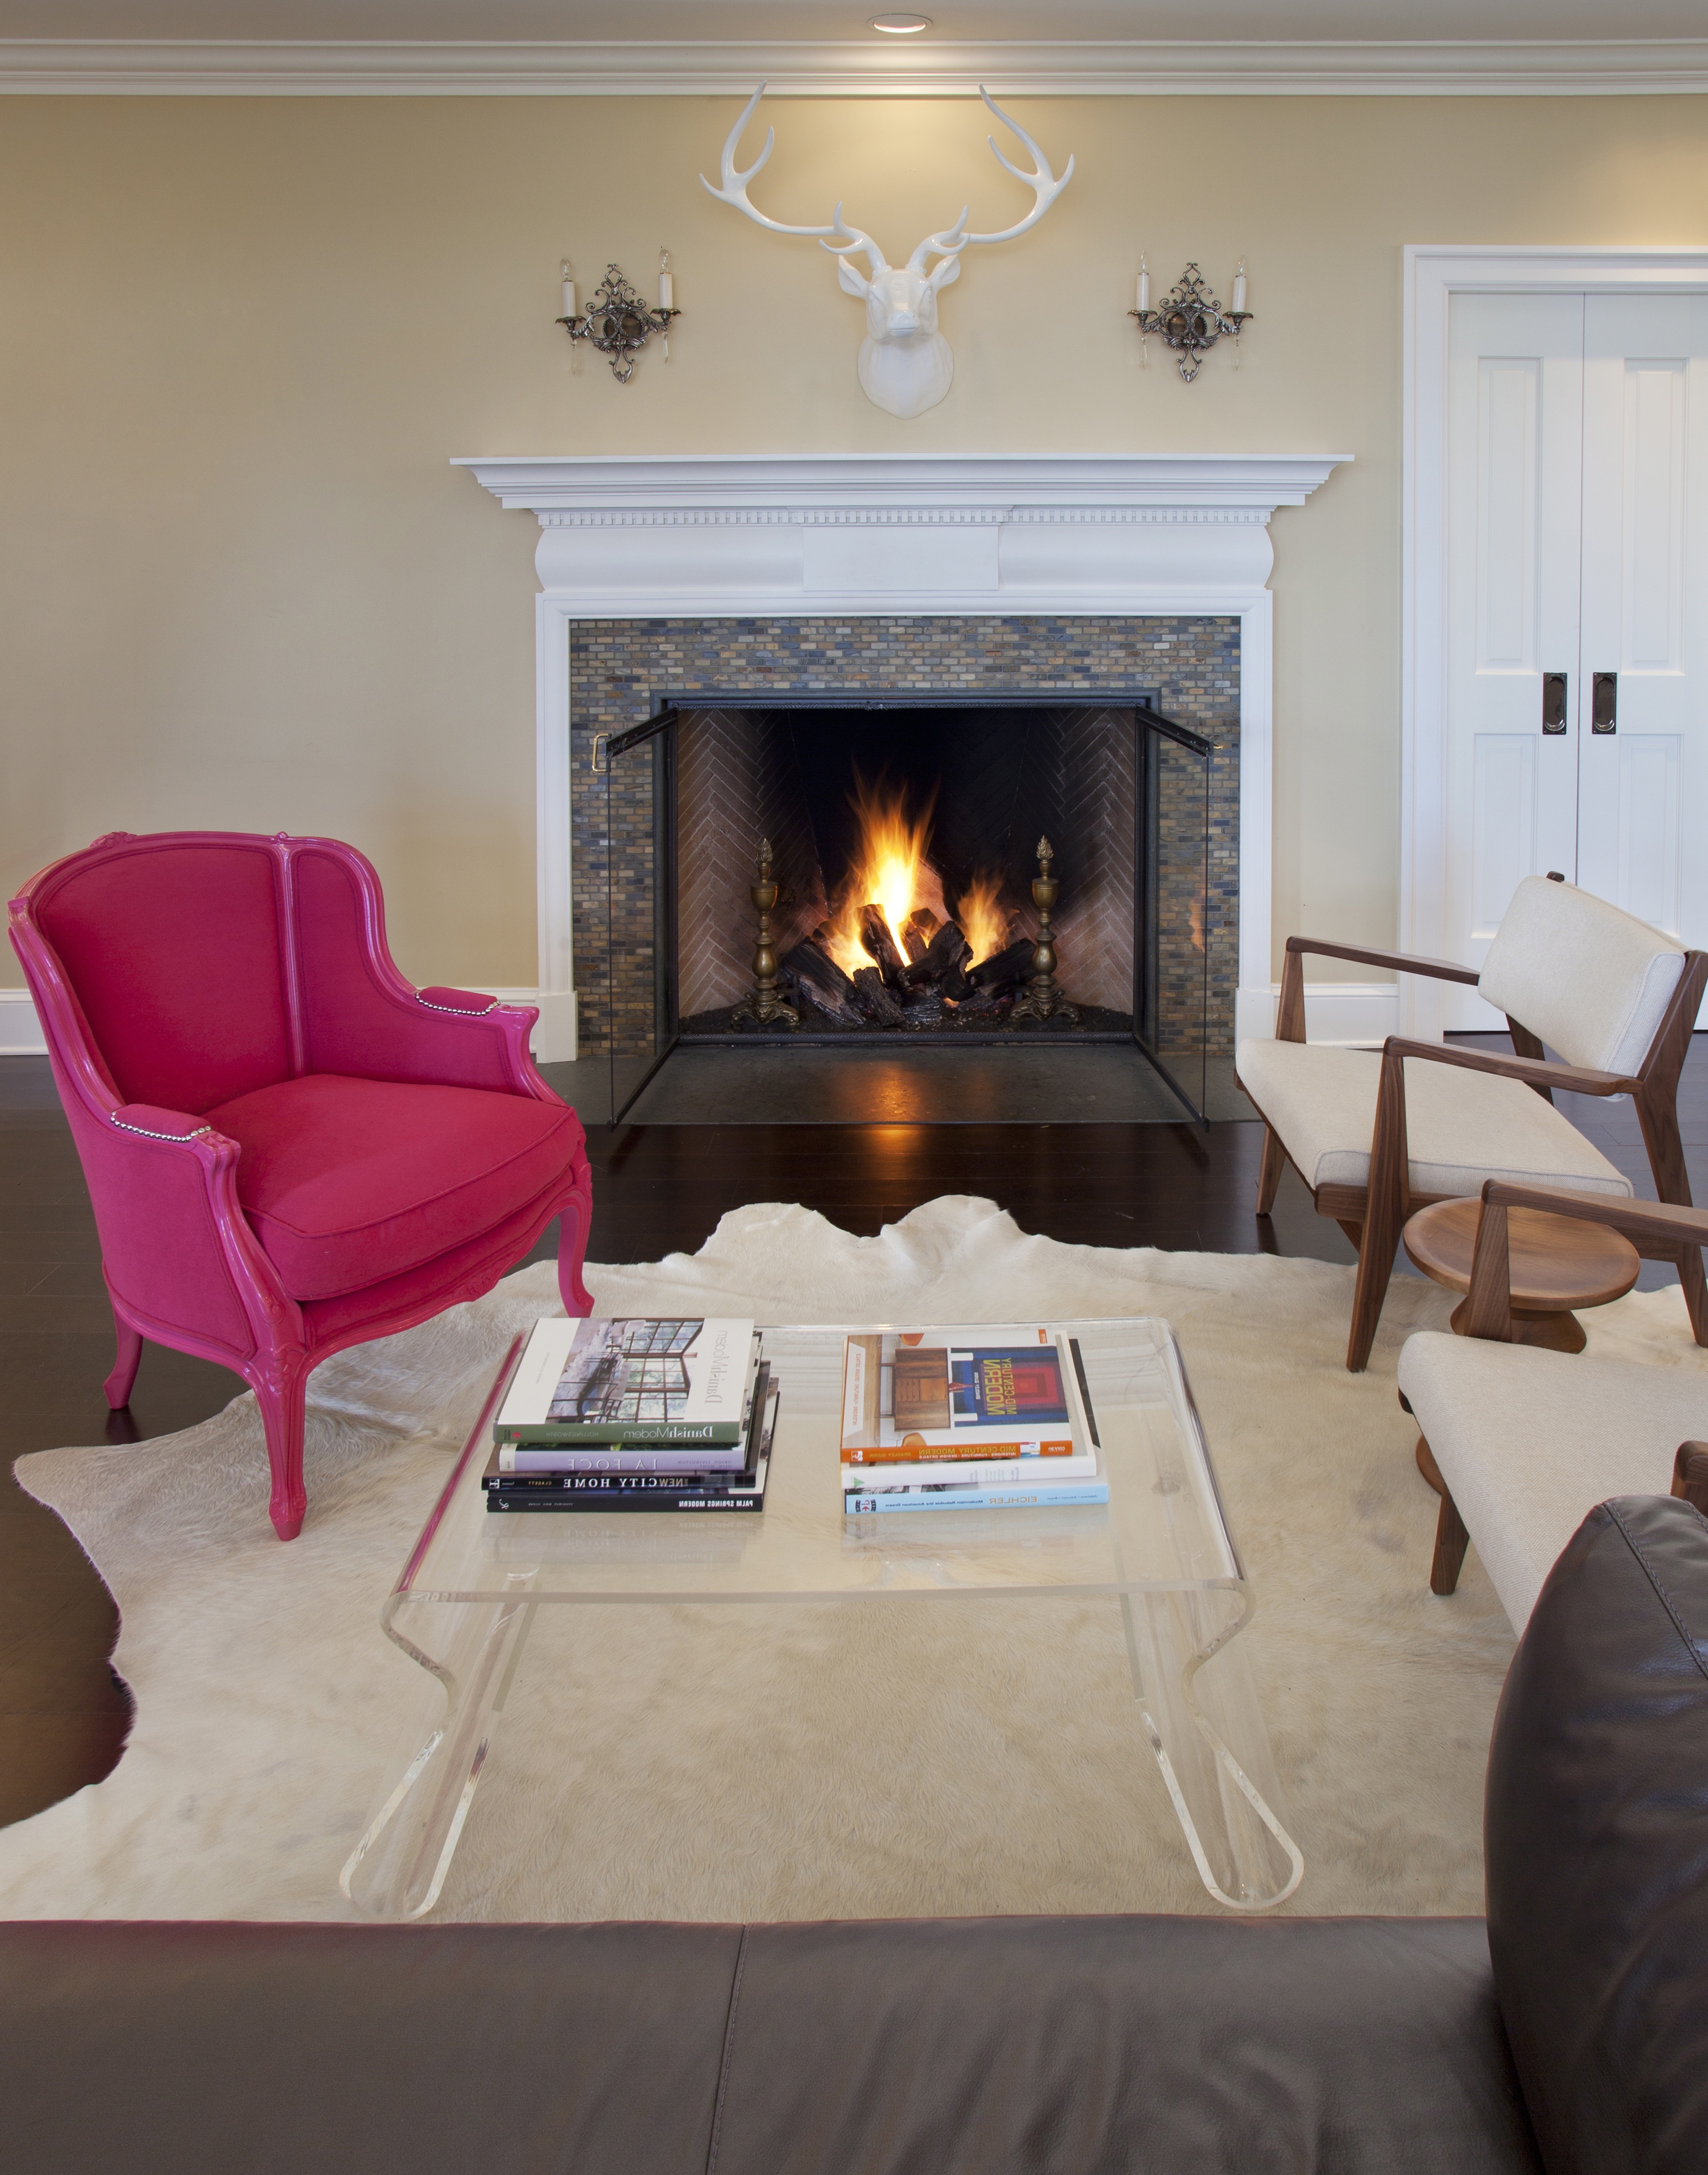 French Country Living Room With Bold Accents (Image 10 of 18)